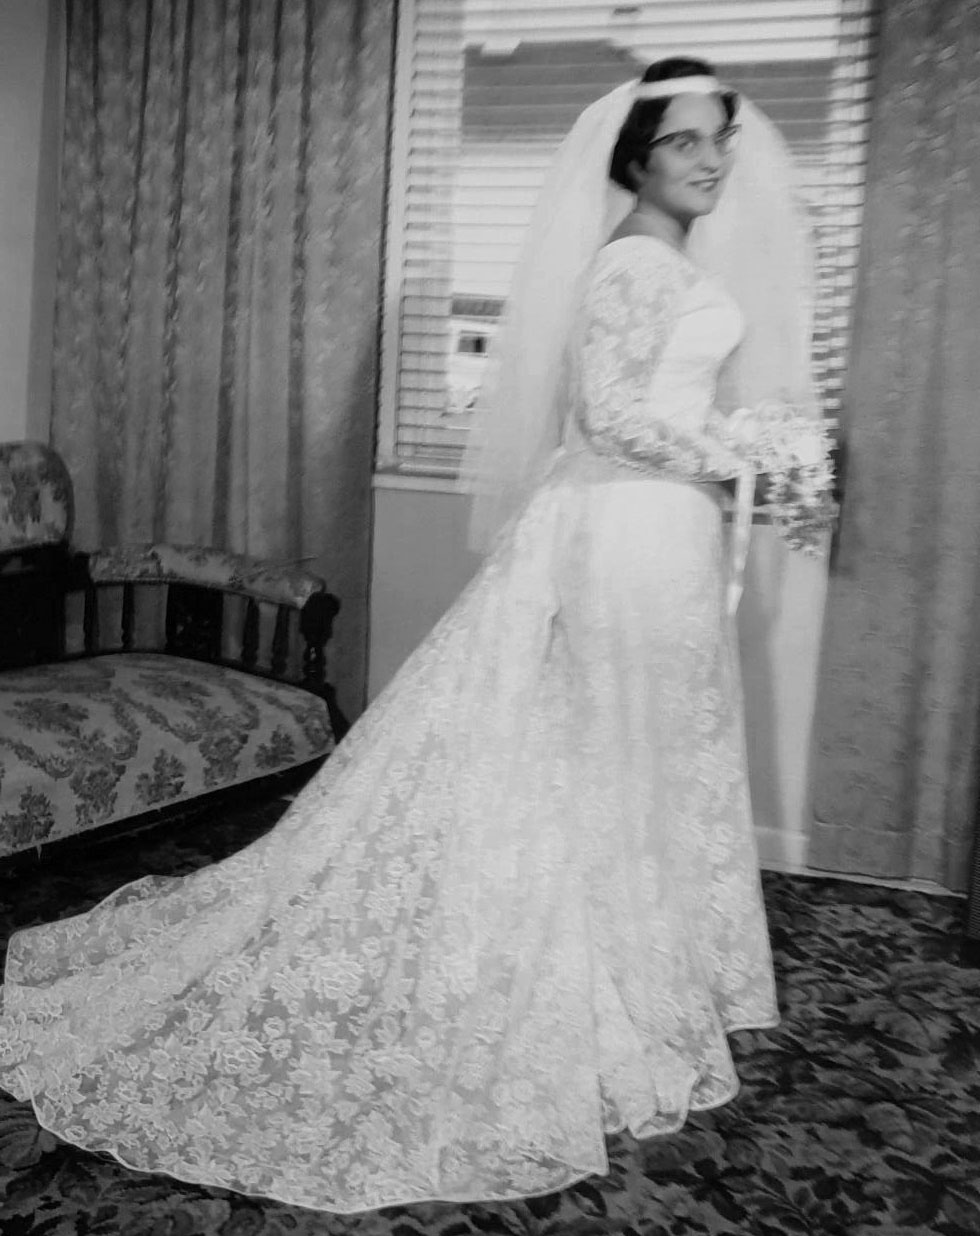 Ailsa Page Mothers Wedding Gown.jpg